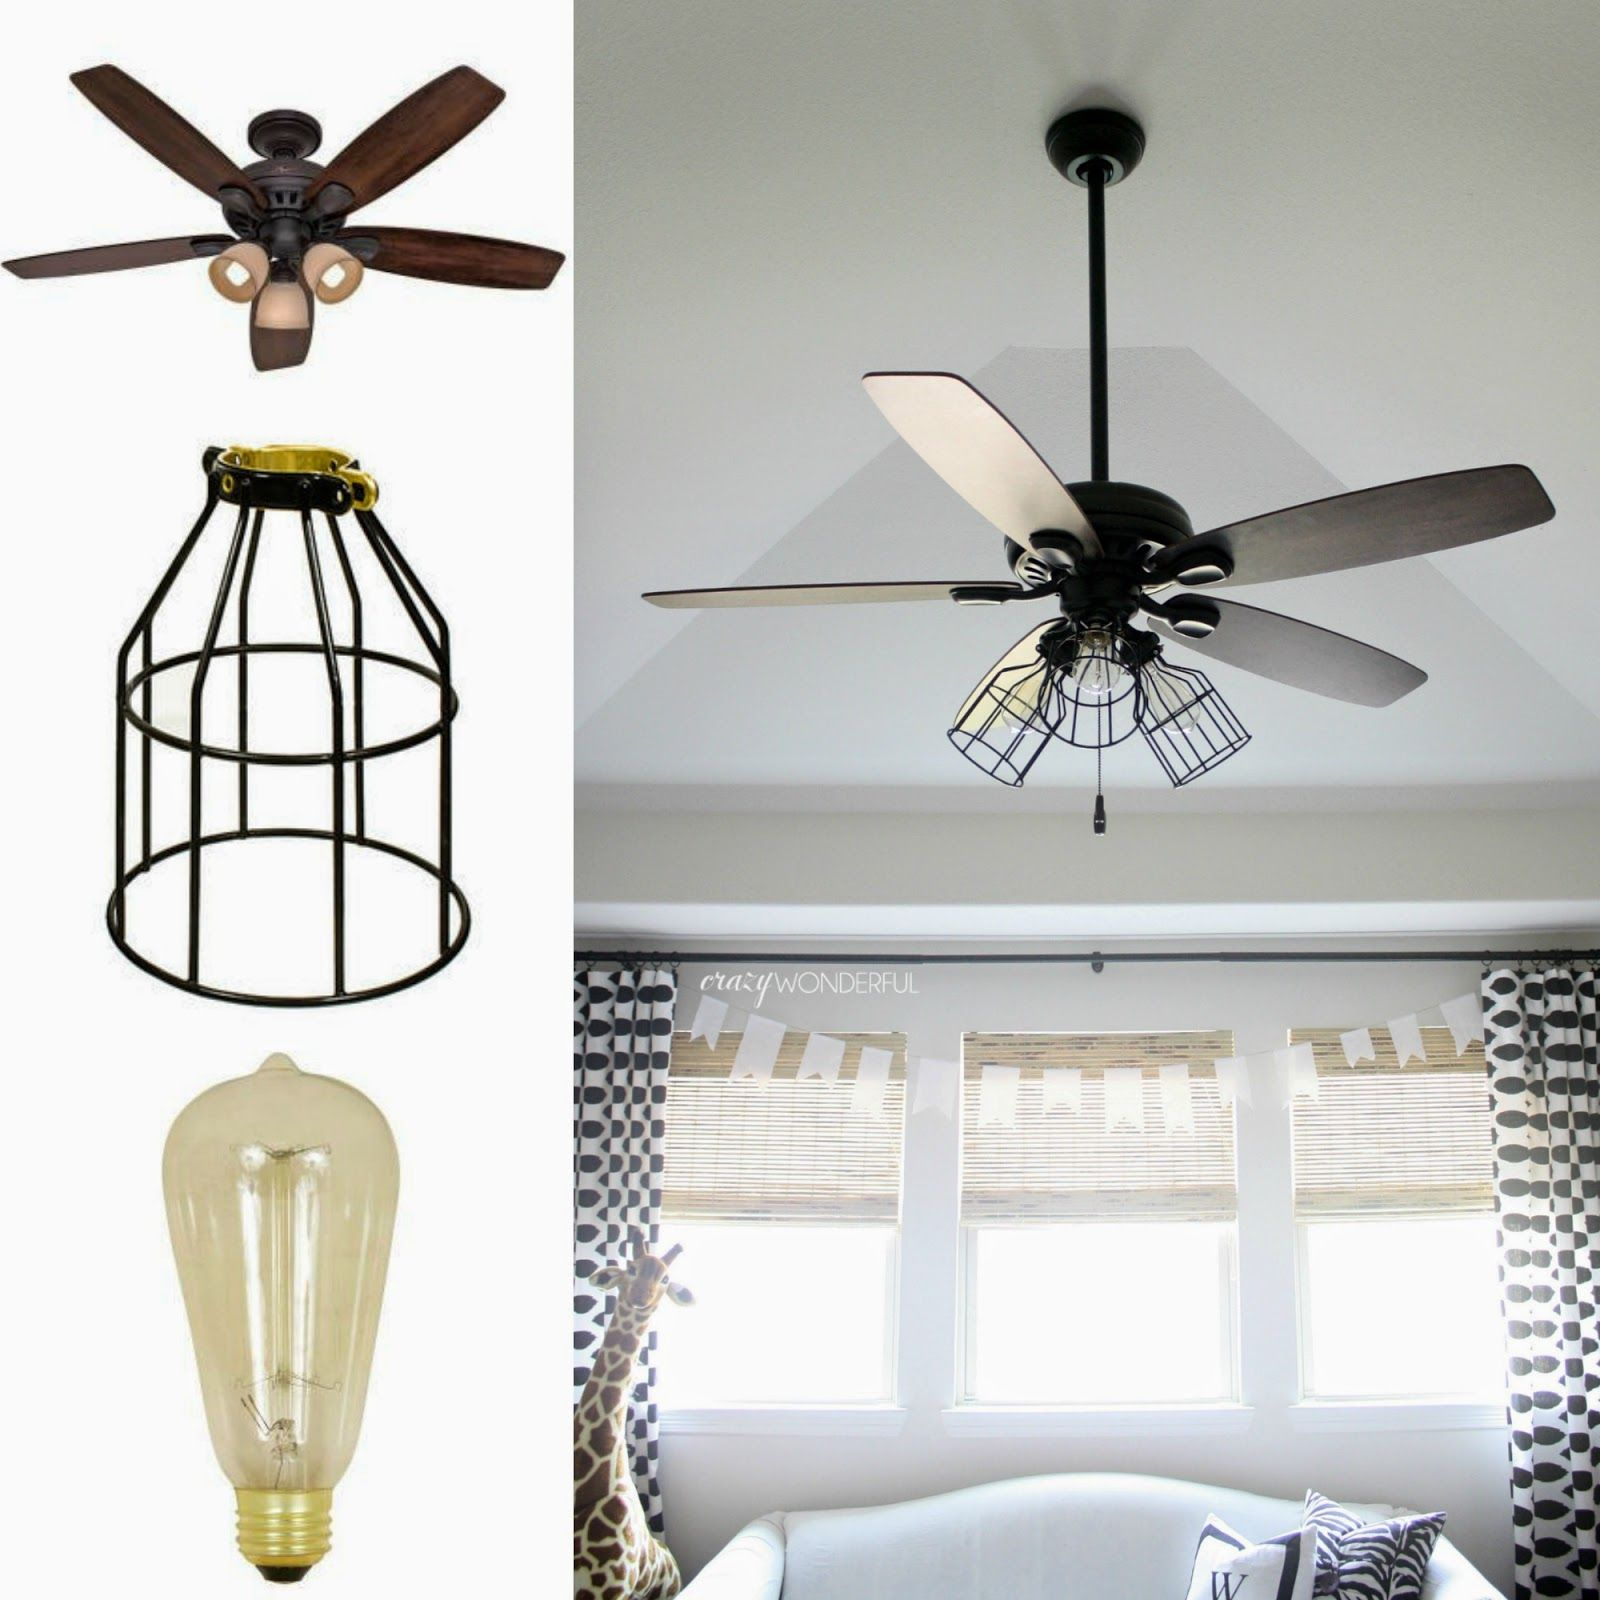 Crazy wonderful diy cage light ceiling fan crazy wonderful blog crazy wonderful diy cage light ceiling fan kitchen aloadofball Images